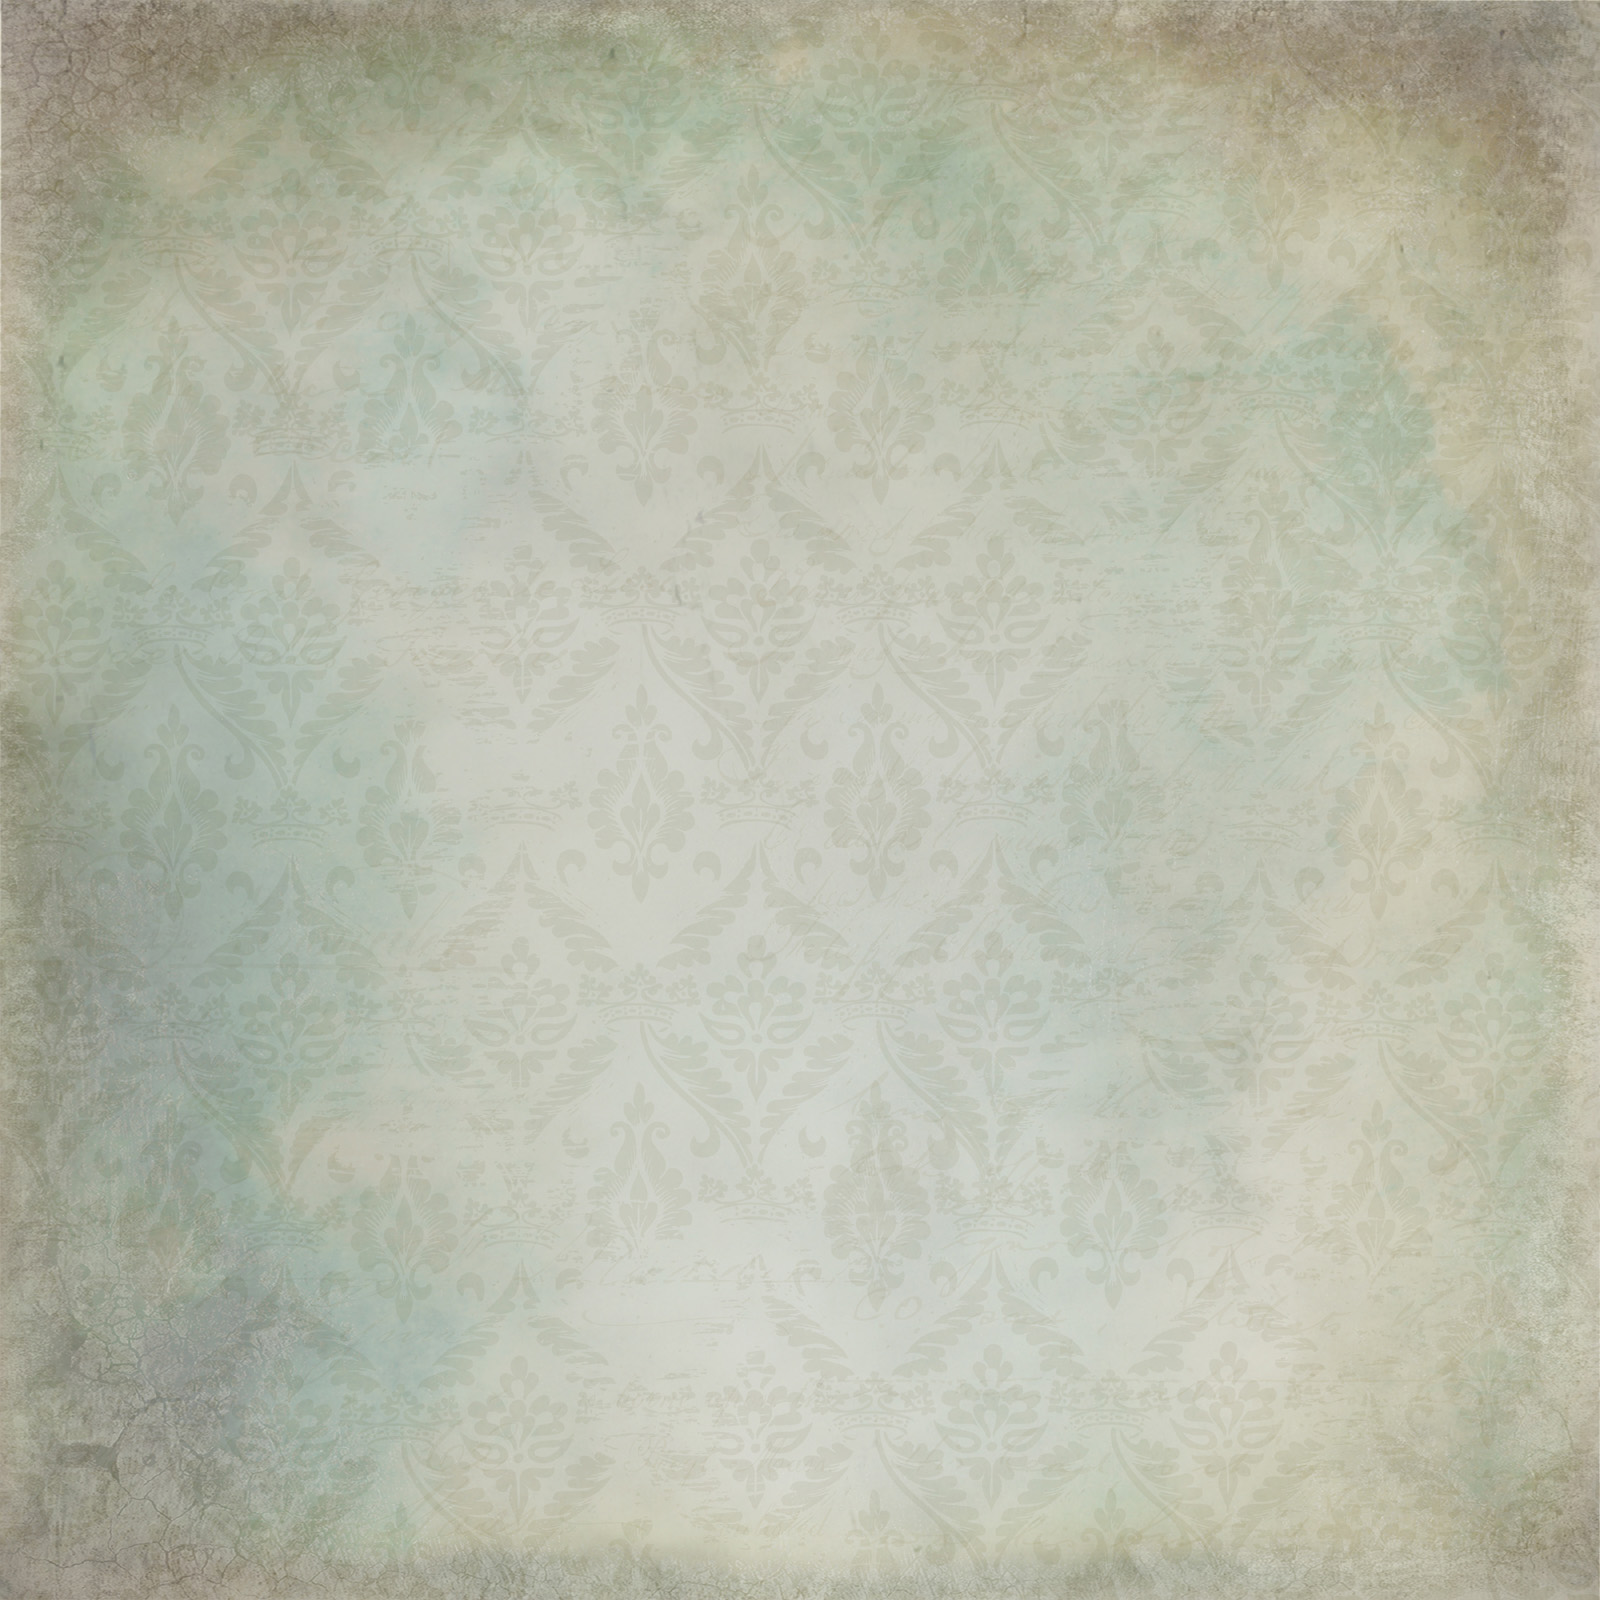 Retro styles patterns background 51742